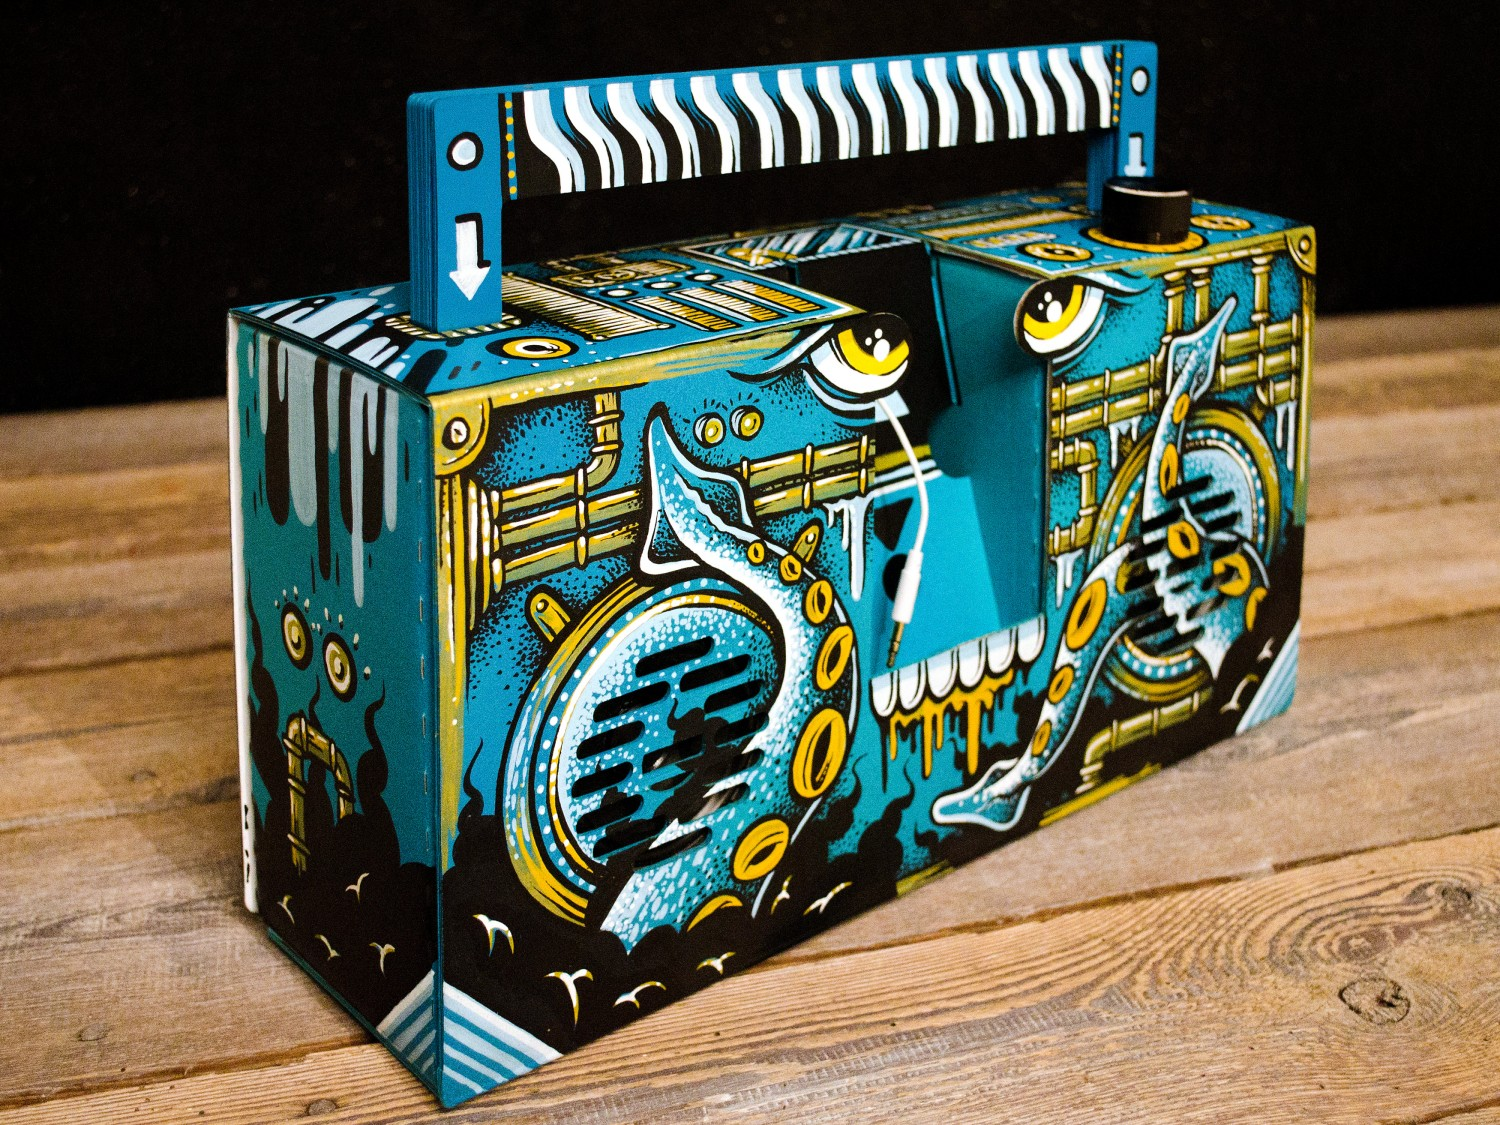 Mike Friedrich custom Berlin Booombox